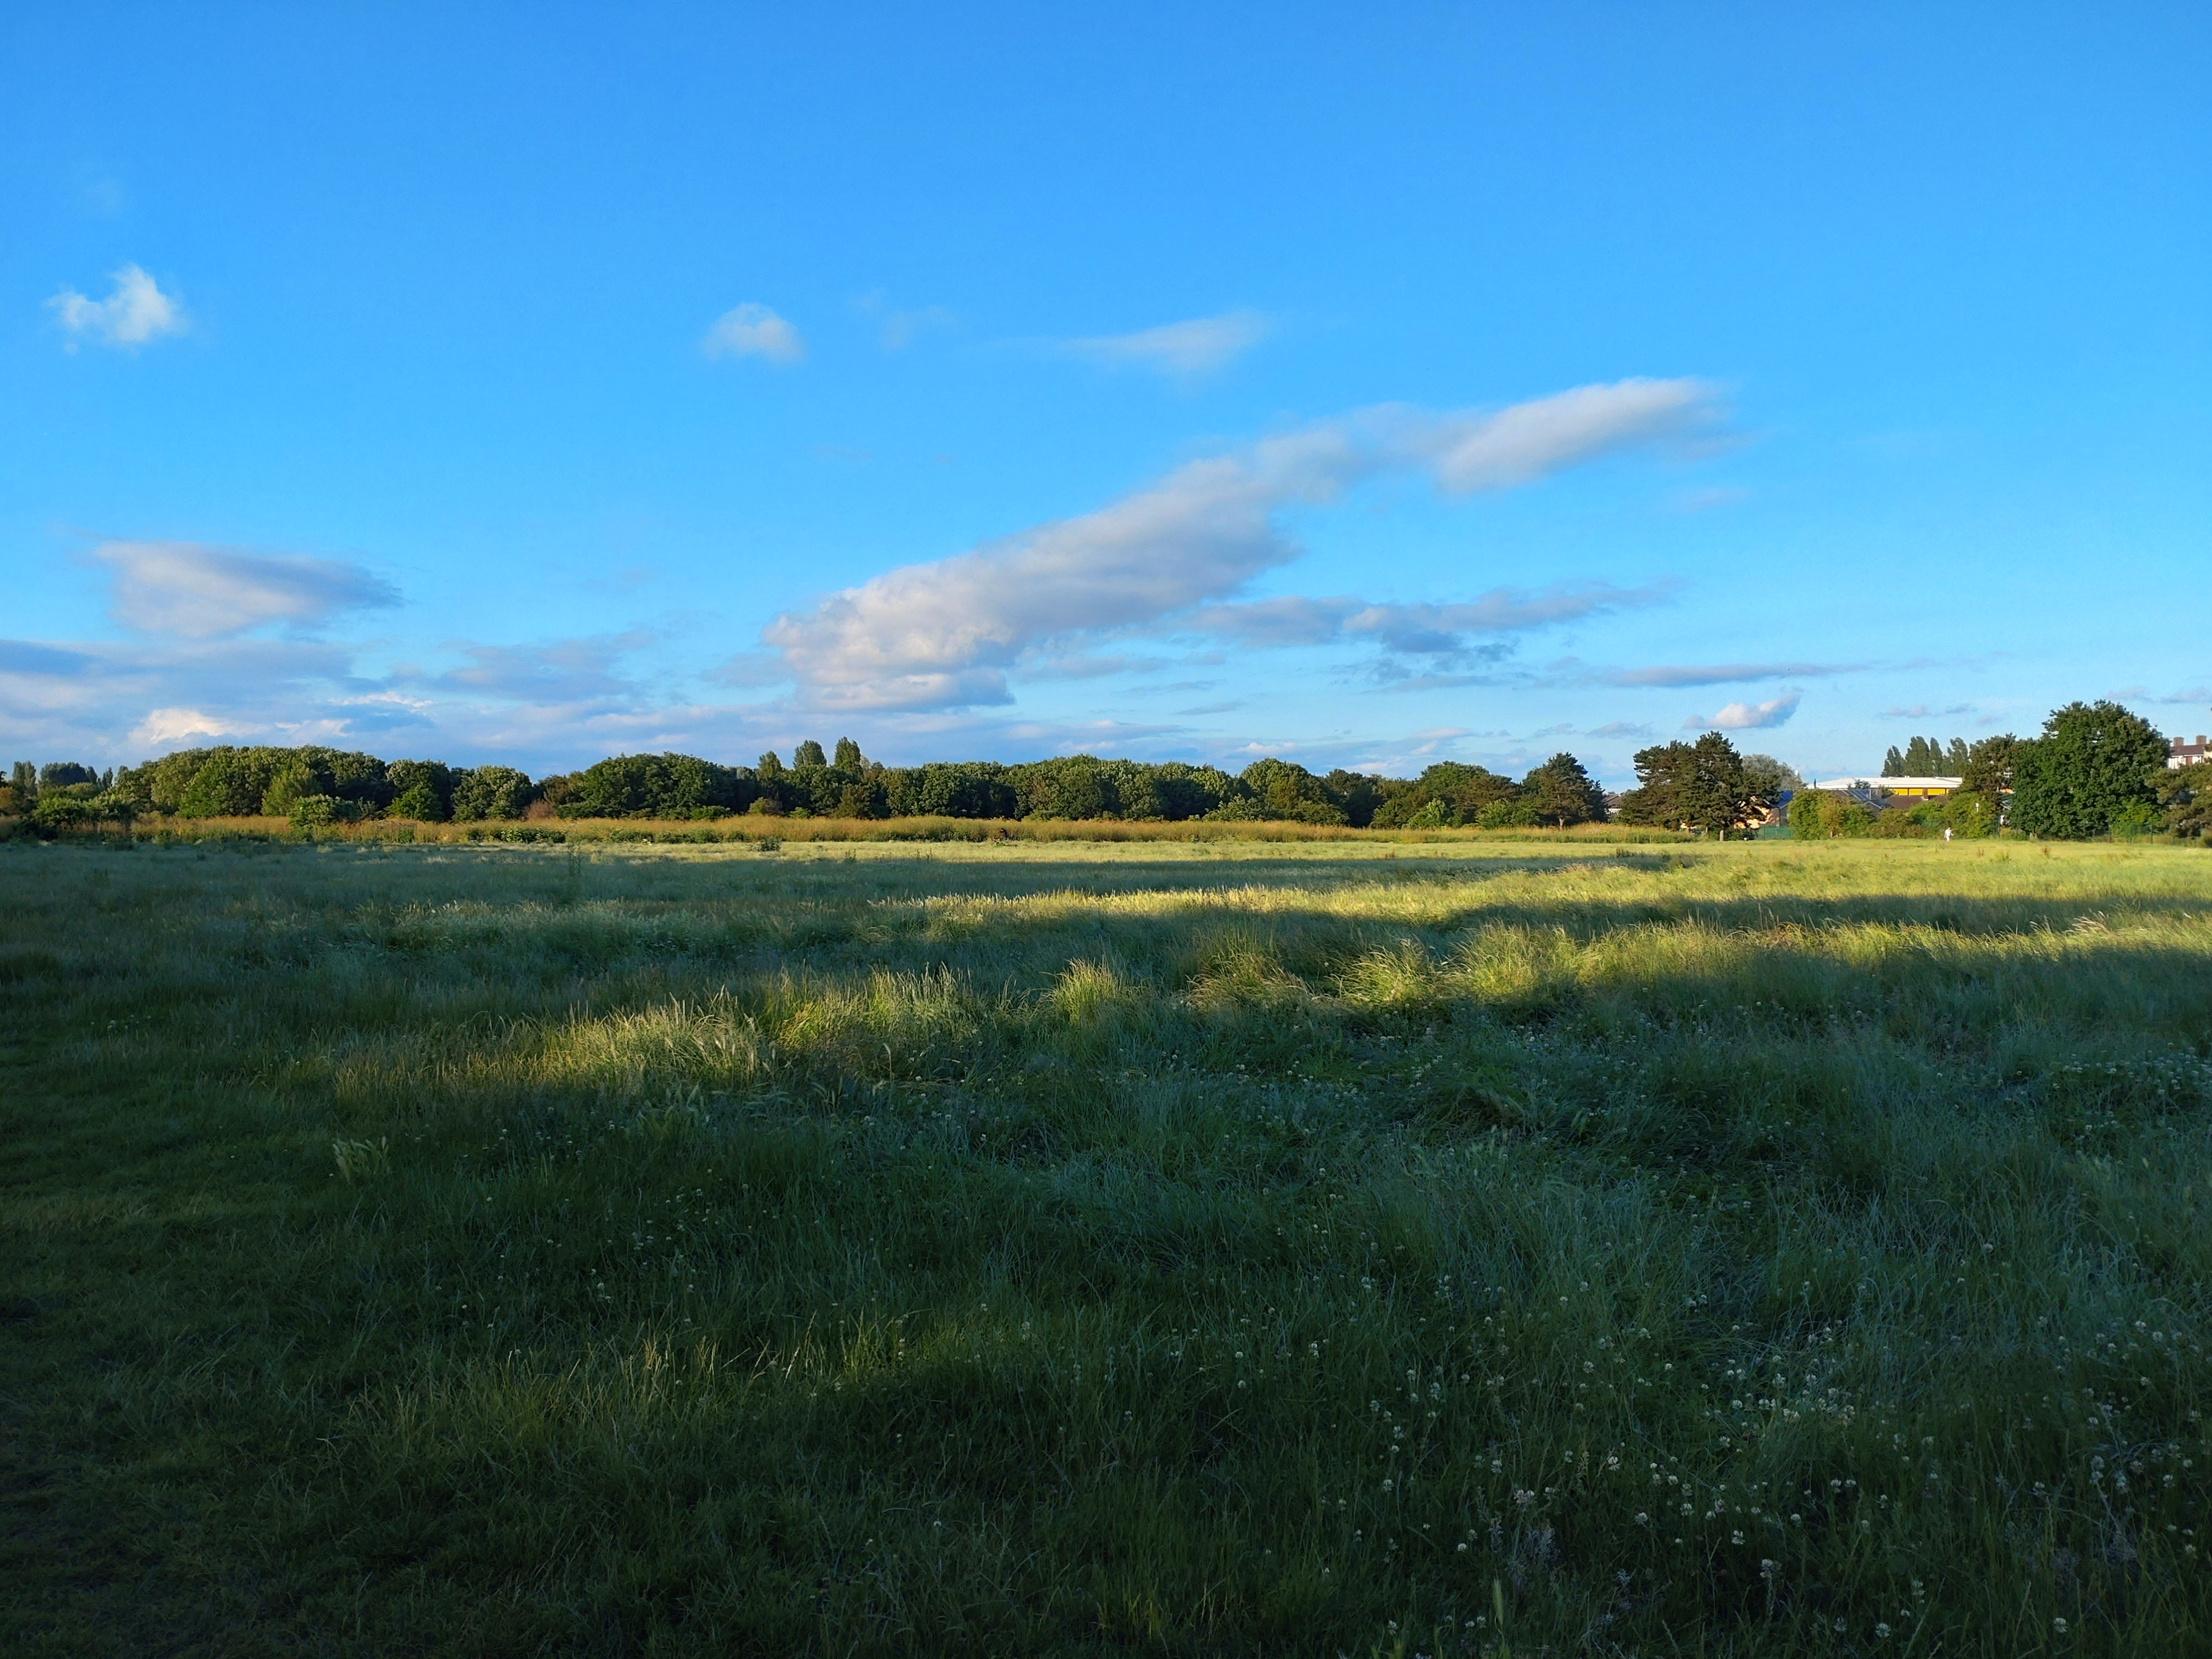 A field shot on the Xperia 10 III